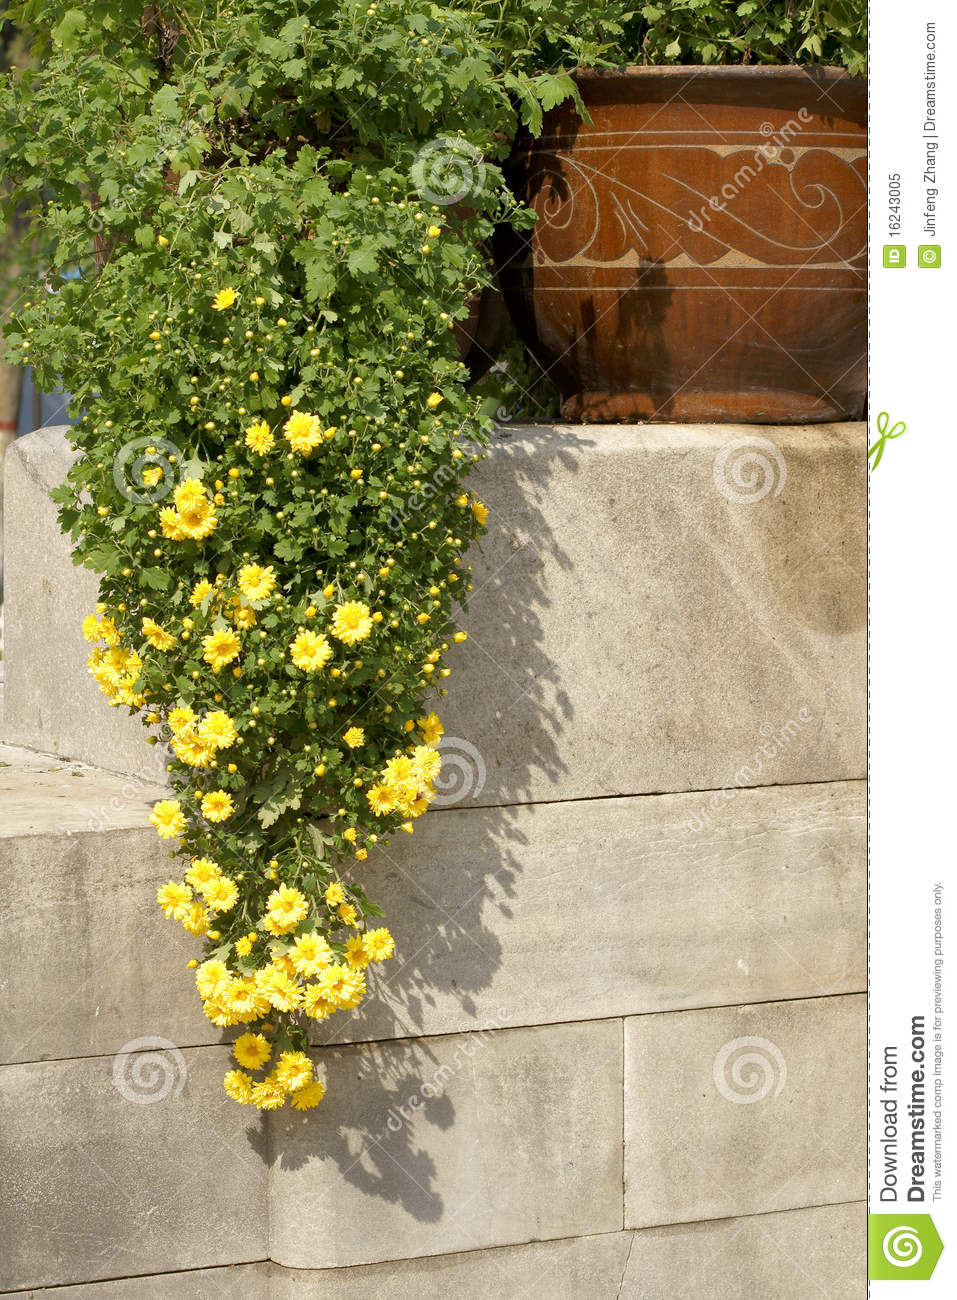 Parterre royalty free stock photo image 16243005 for Parterre 3d